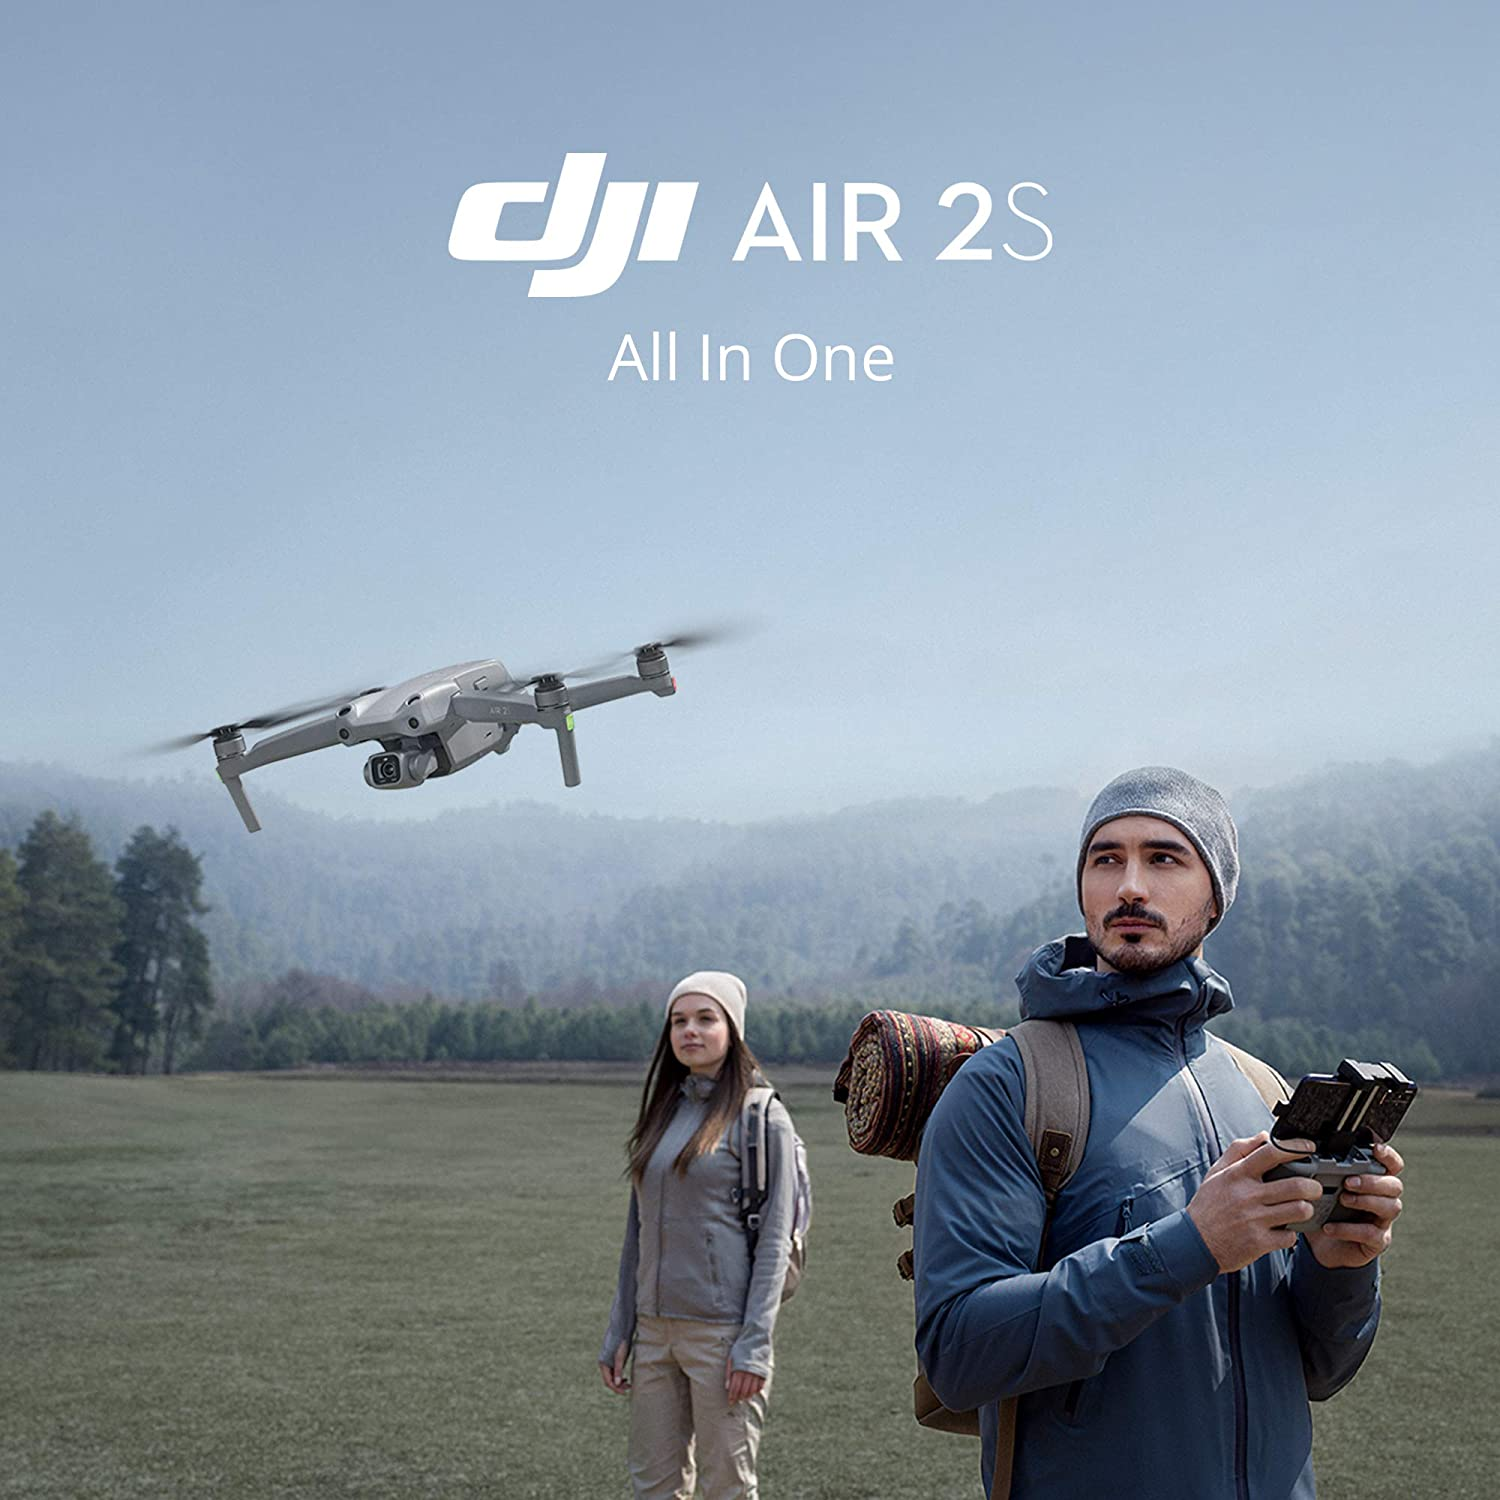 DJI Air 2S Drone - Flying the drone